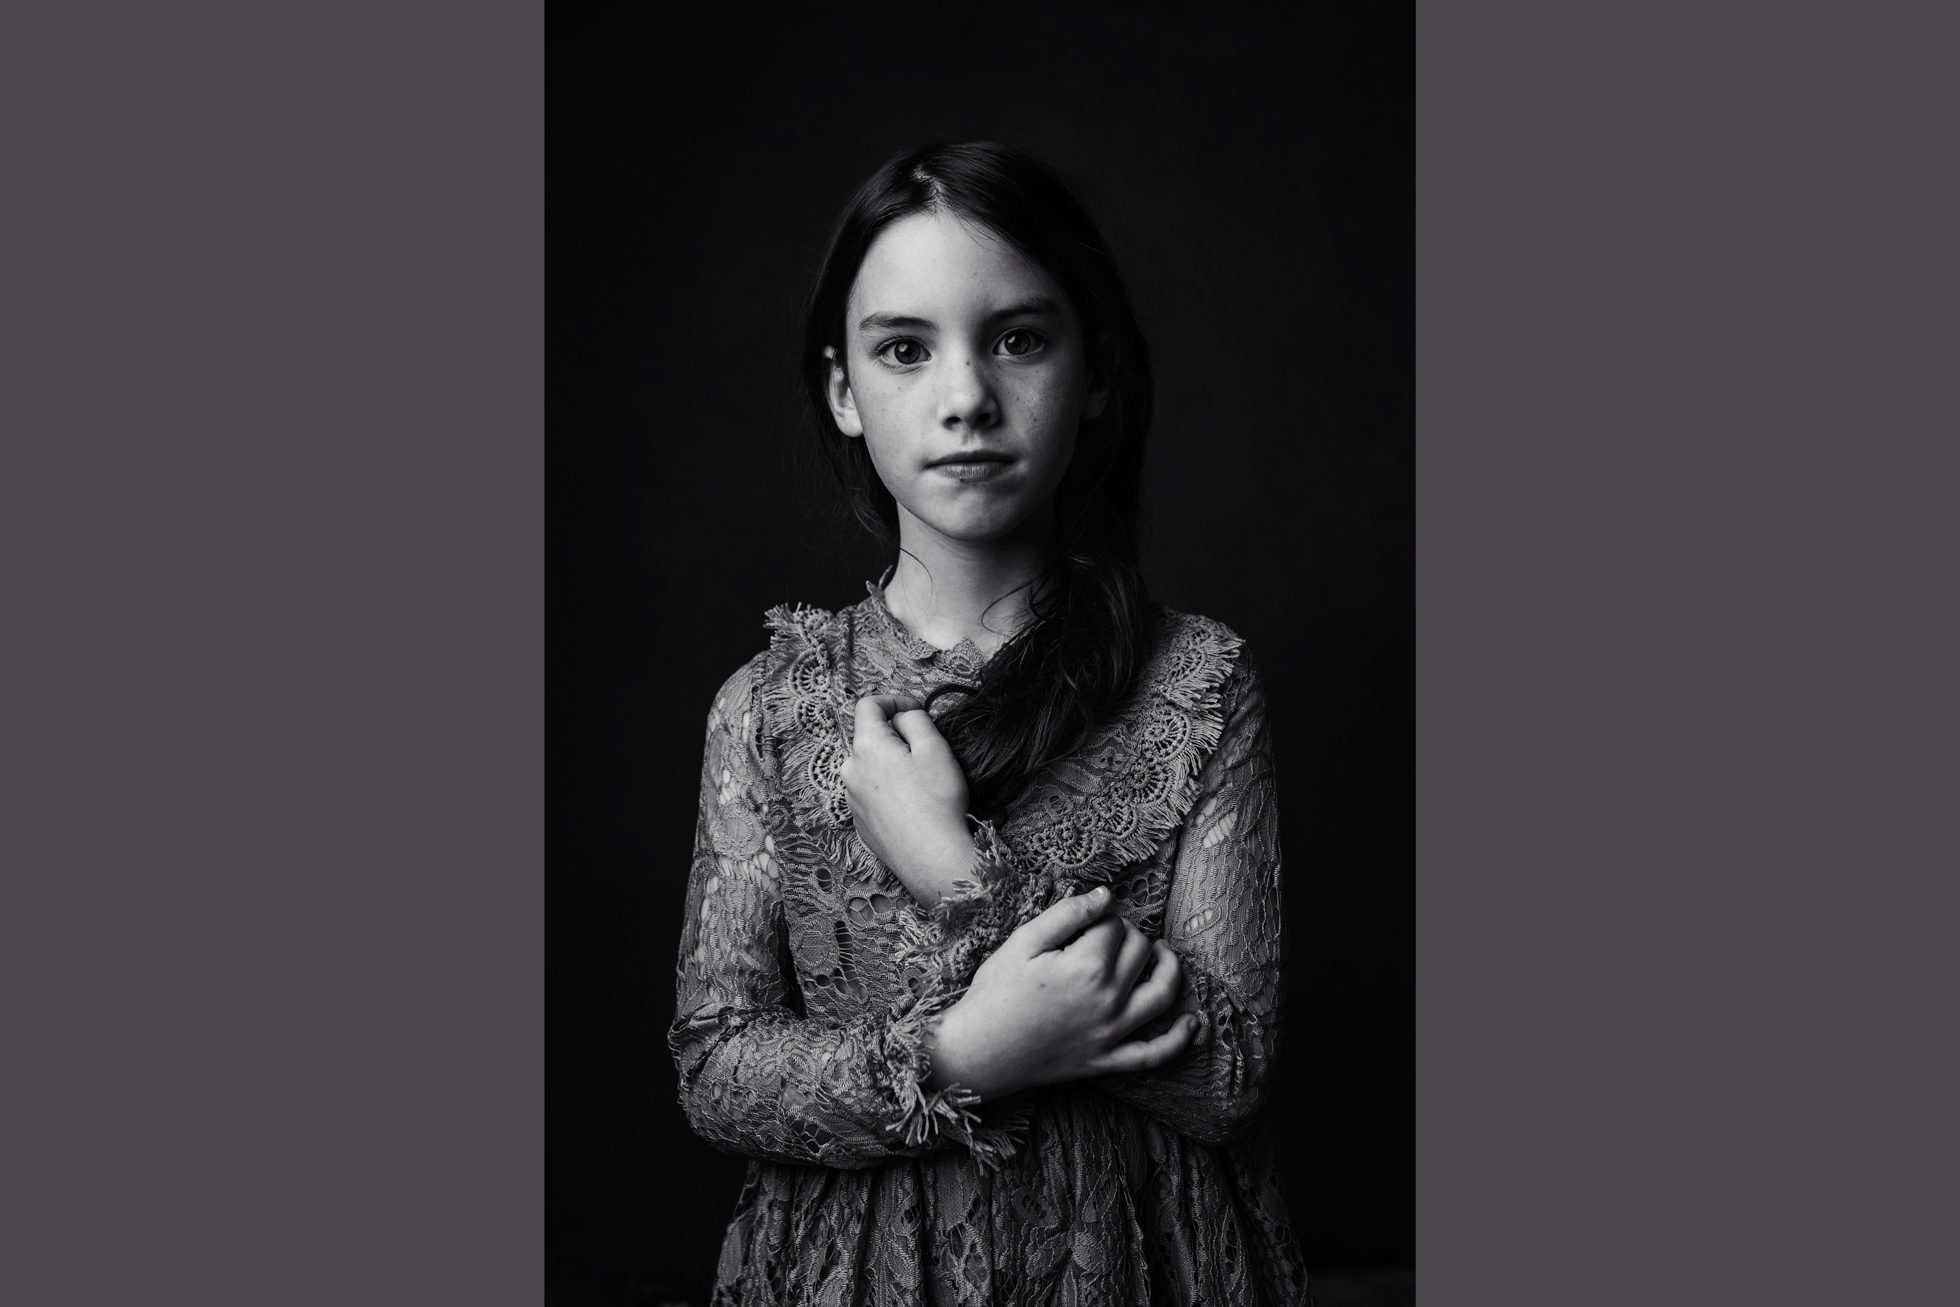 Black and white portrait of a girl